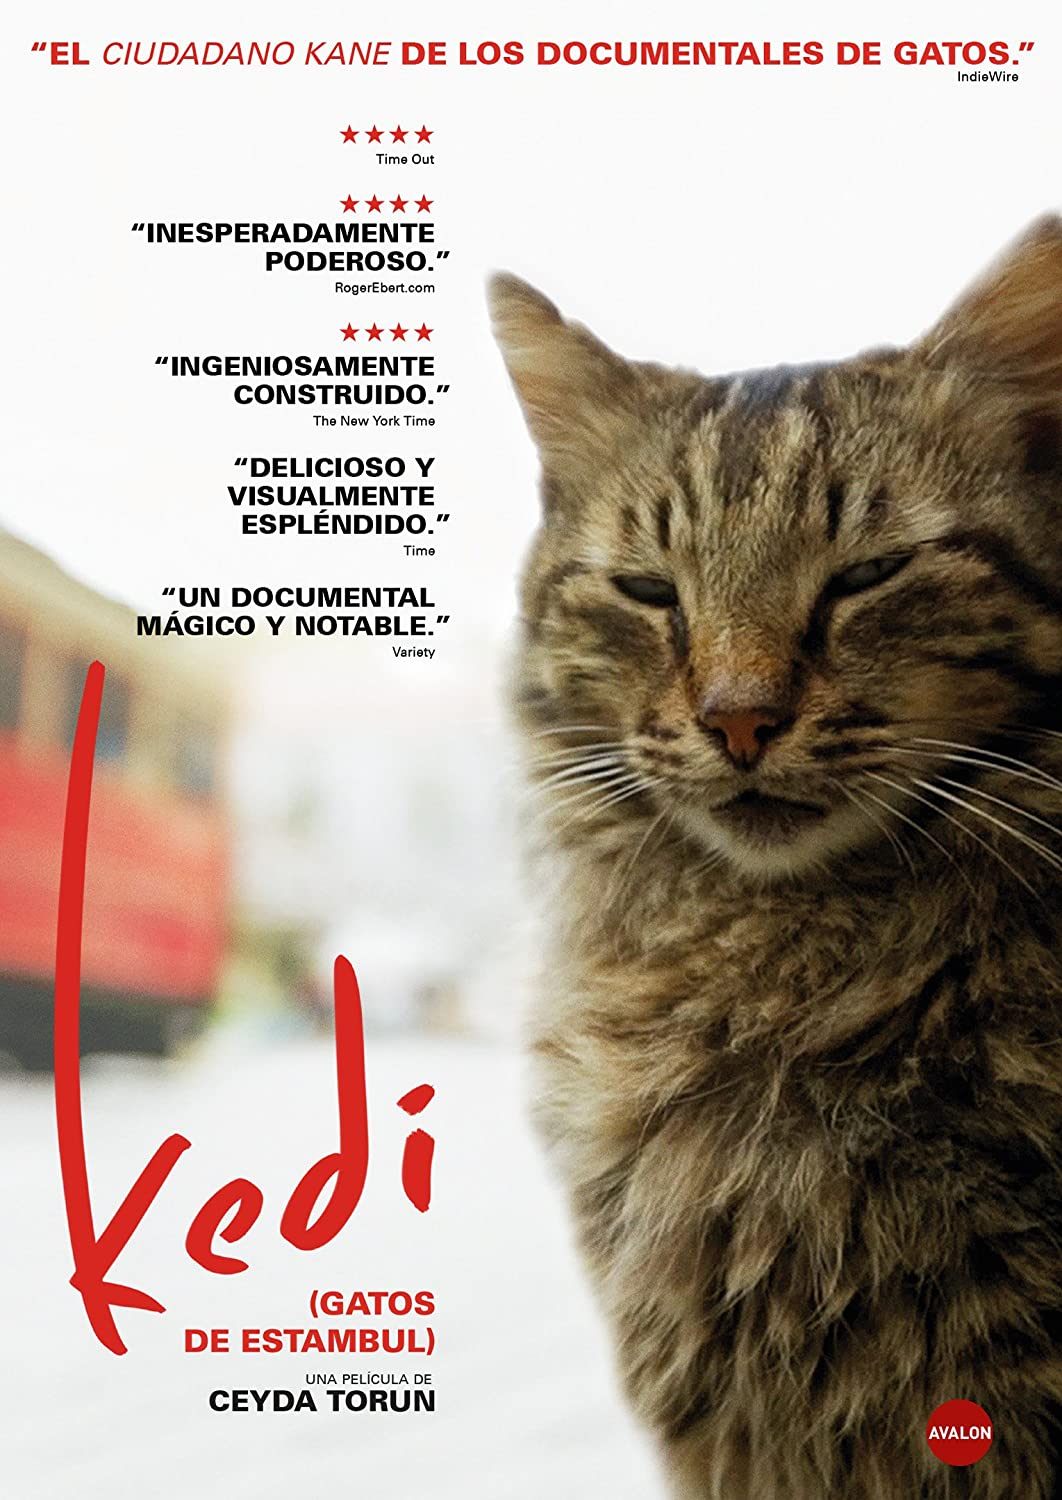 Kedi (Gatos de Estambul) [DVD]: Amazon.es: Documental, Ceyda ...